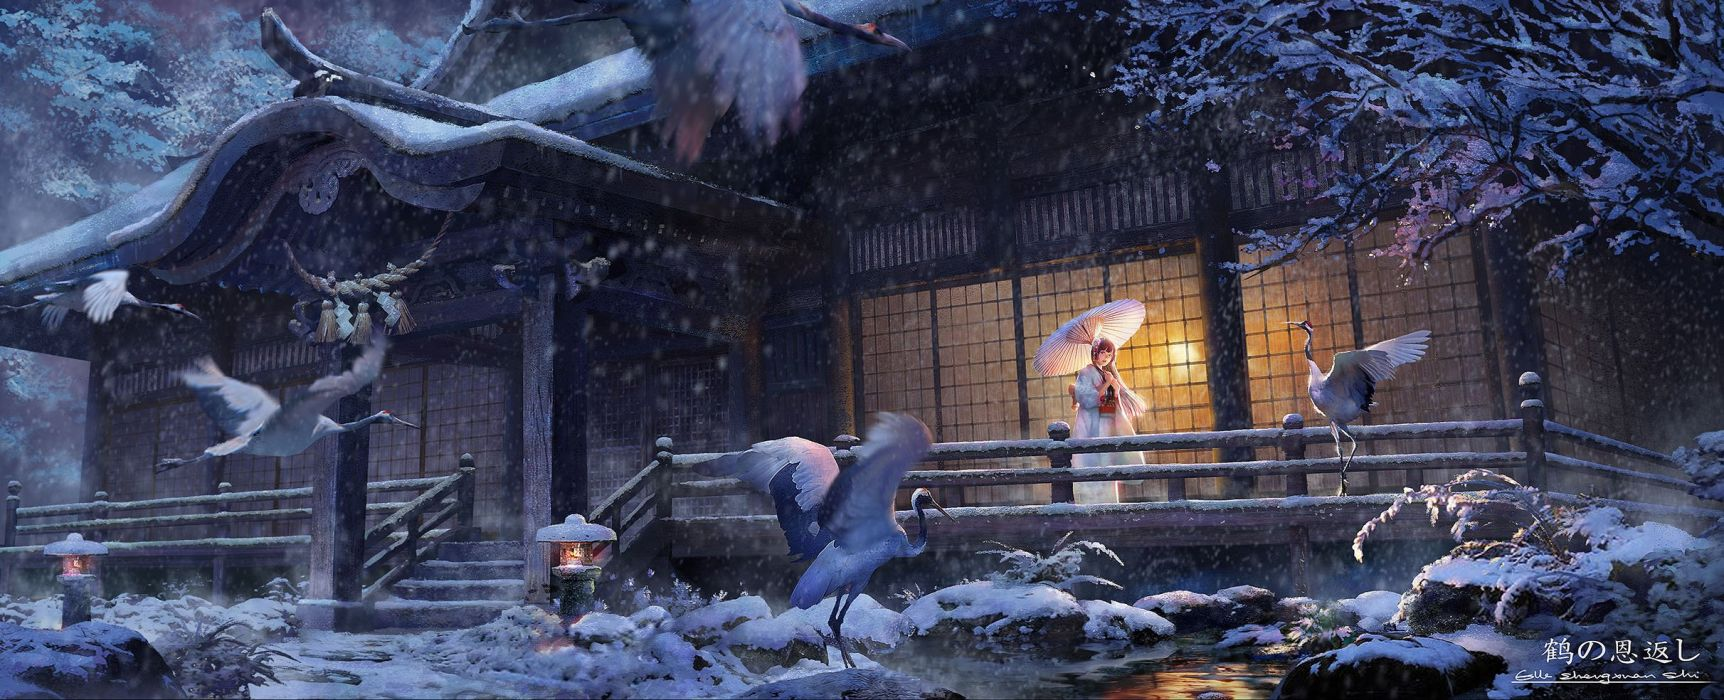 anime girl beautiful animal bird dualscreen japanese clothes kimono lost elle rope shrine signed snow tree tsuru no ongaeshi umbrella water winter wallpaper